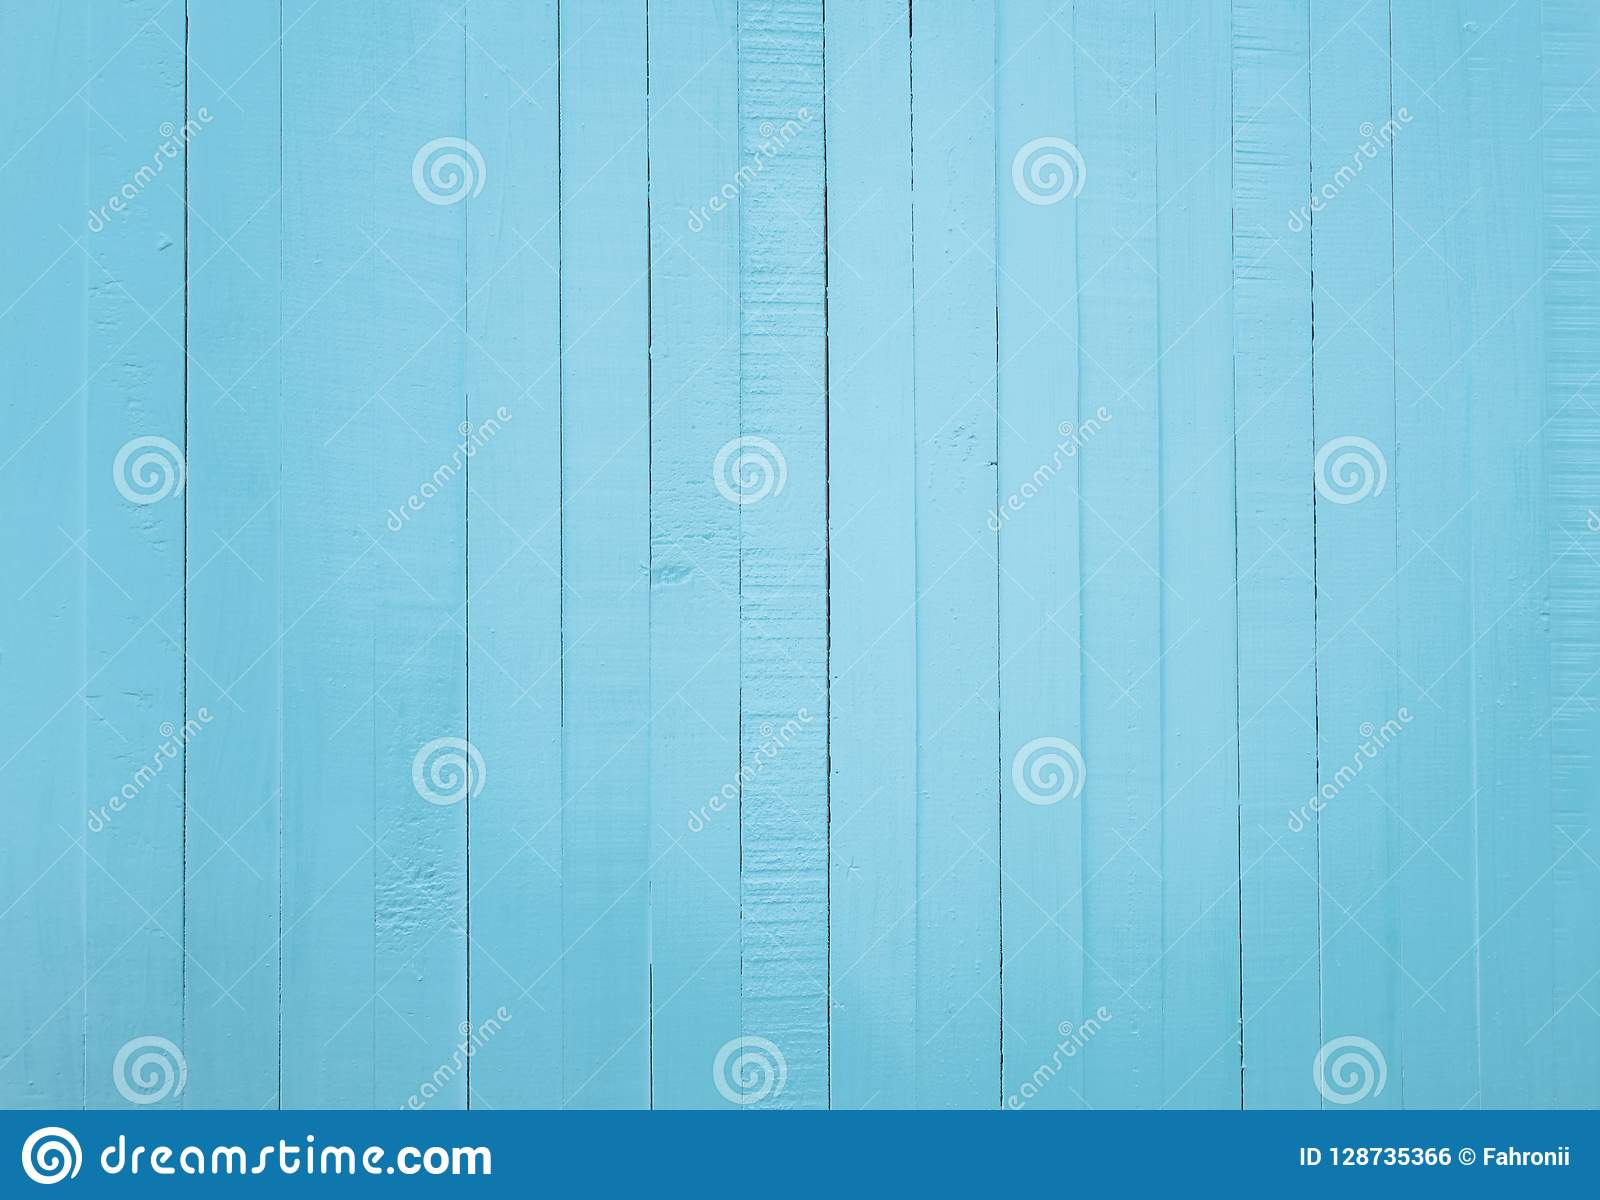 Blue wood texture background. Wood backdrop. Blue pastel color background. Unique wood abstract background. Wooden wallpaper